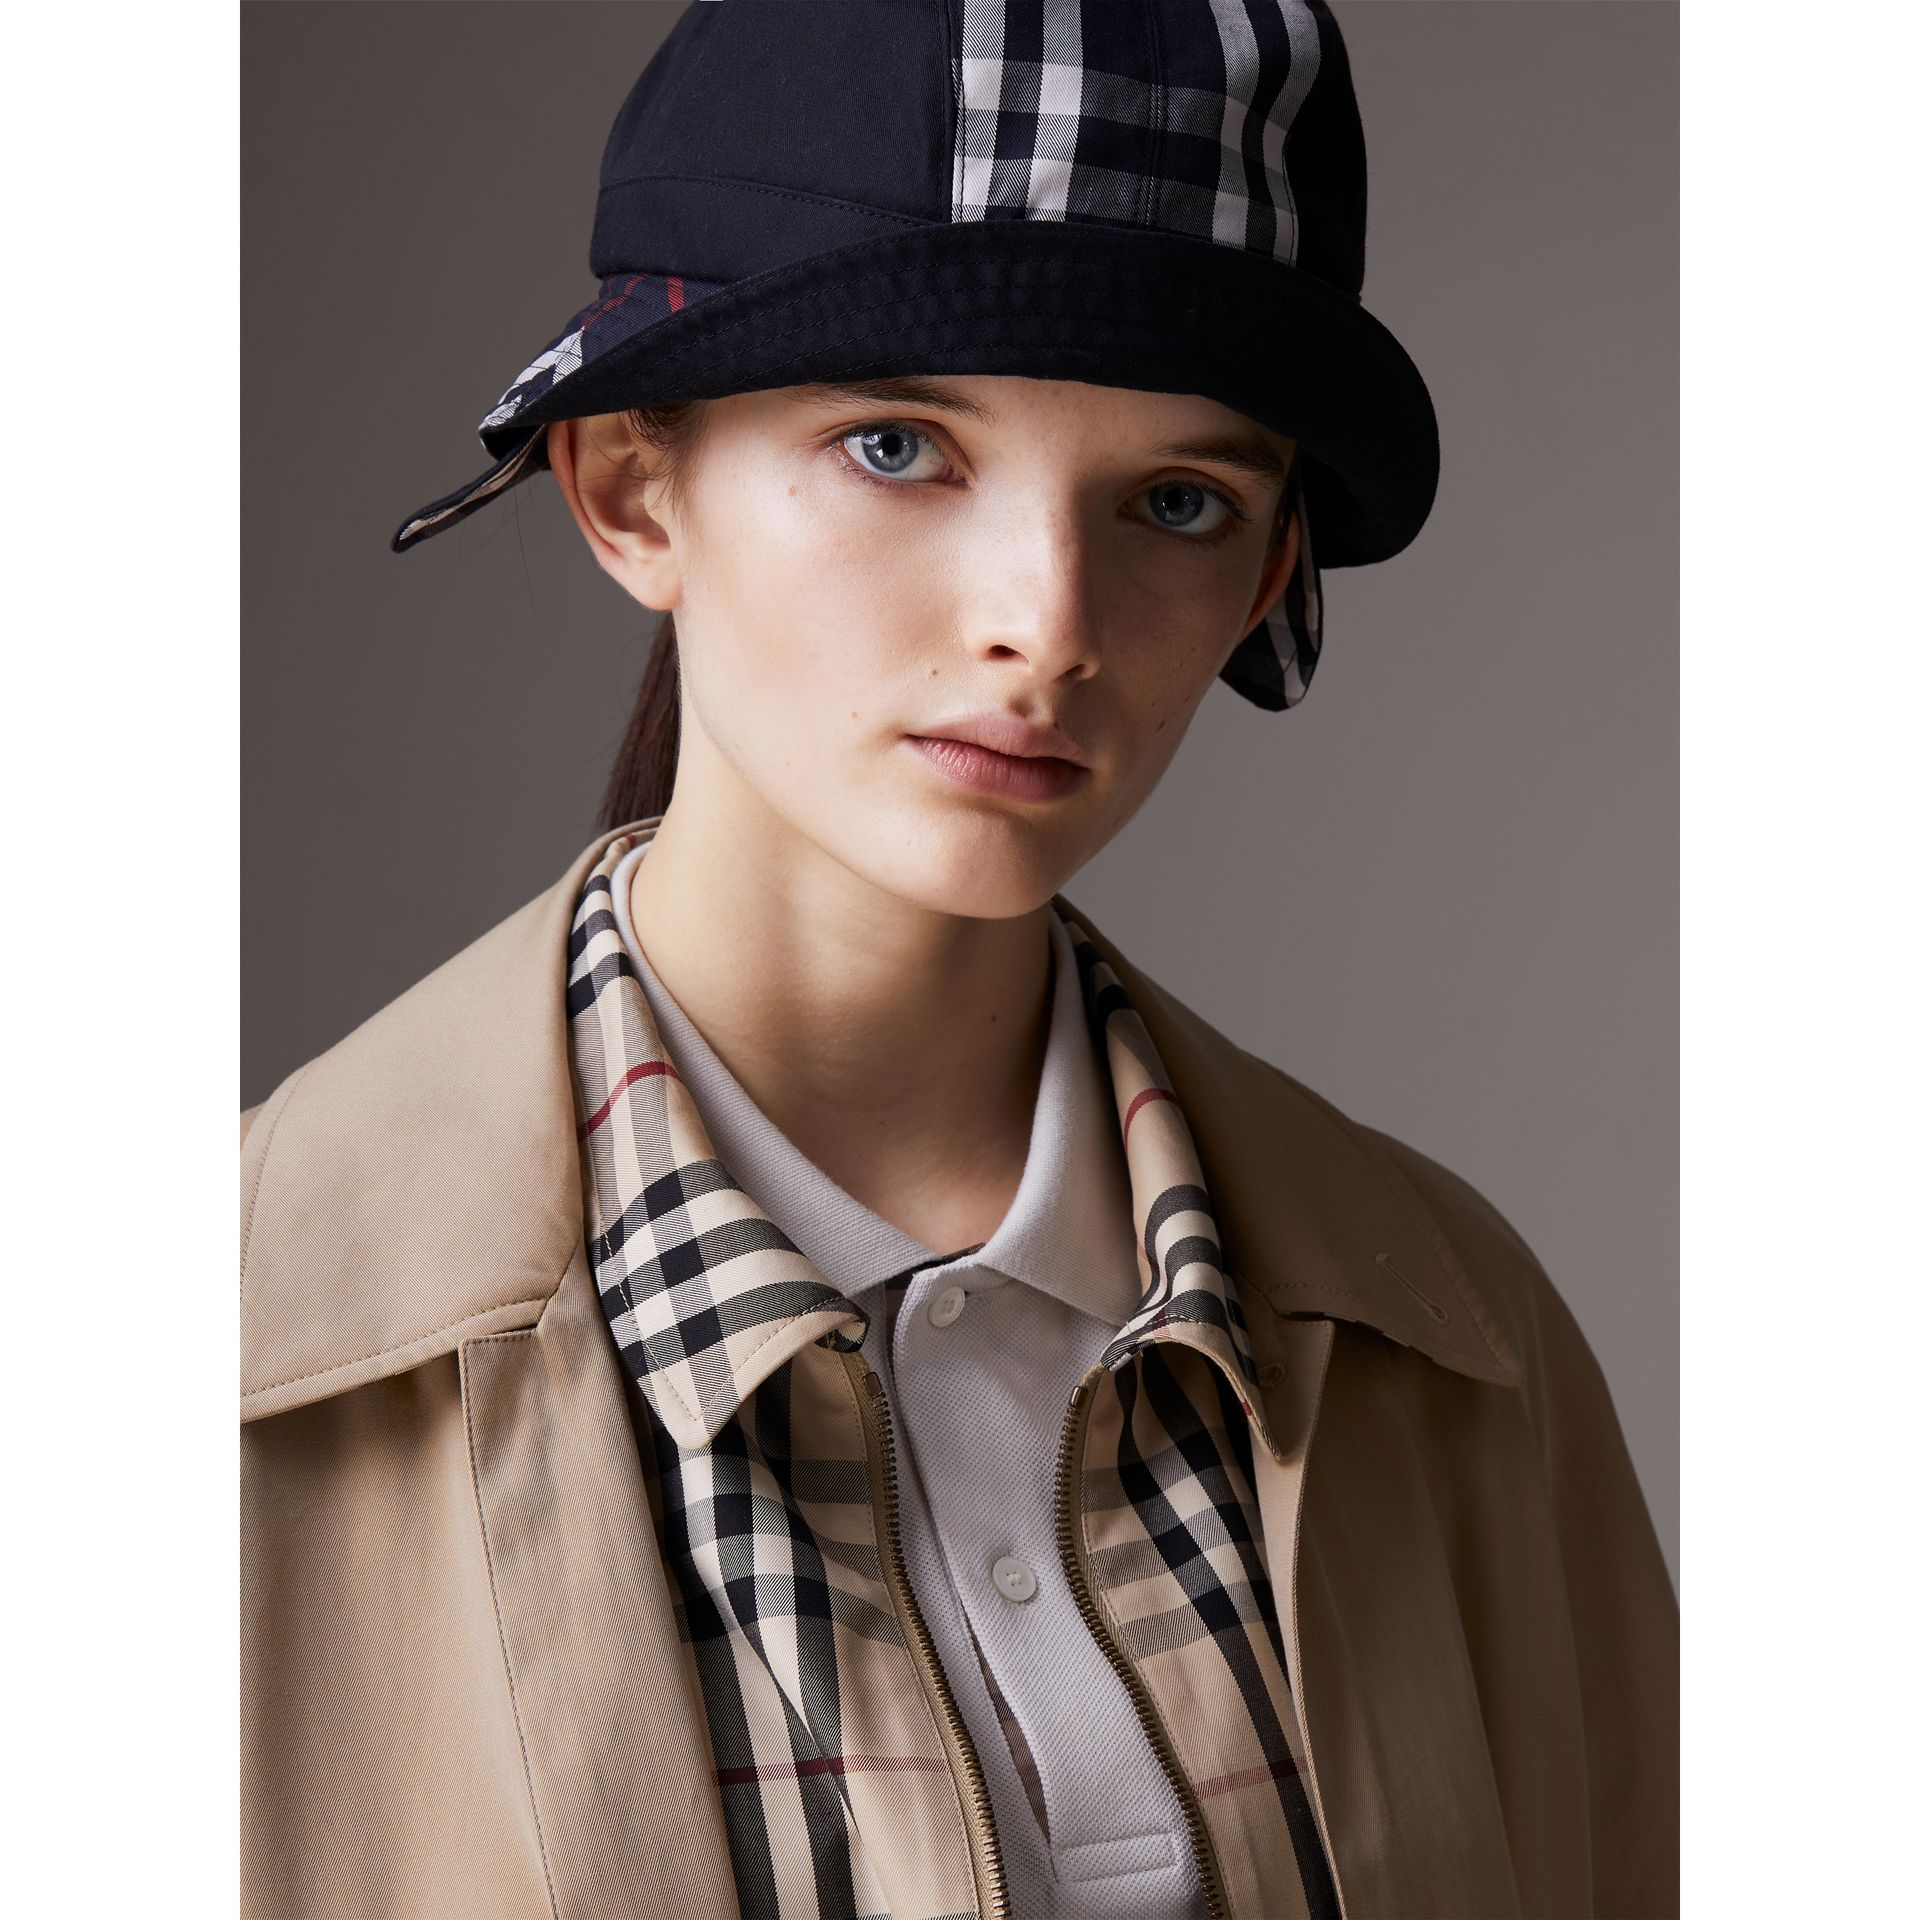 Gosha x Burberry Bucket Hat in Navy | Burberry United Kingdom - gallery image 3